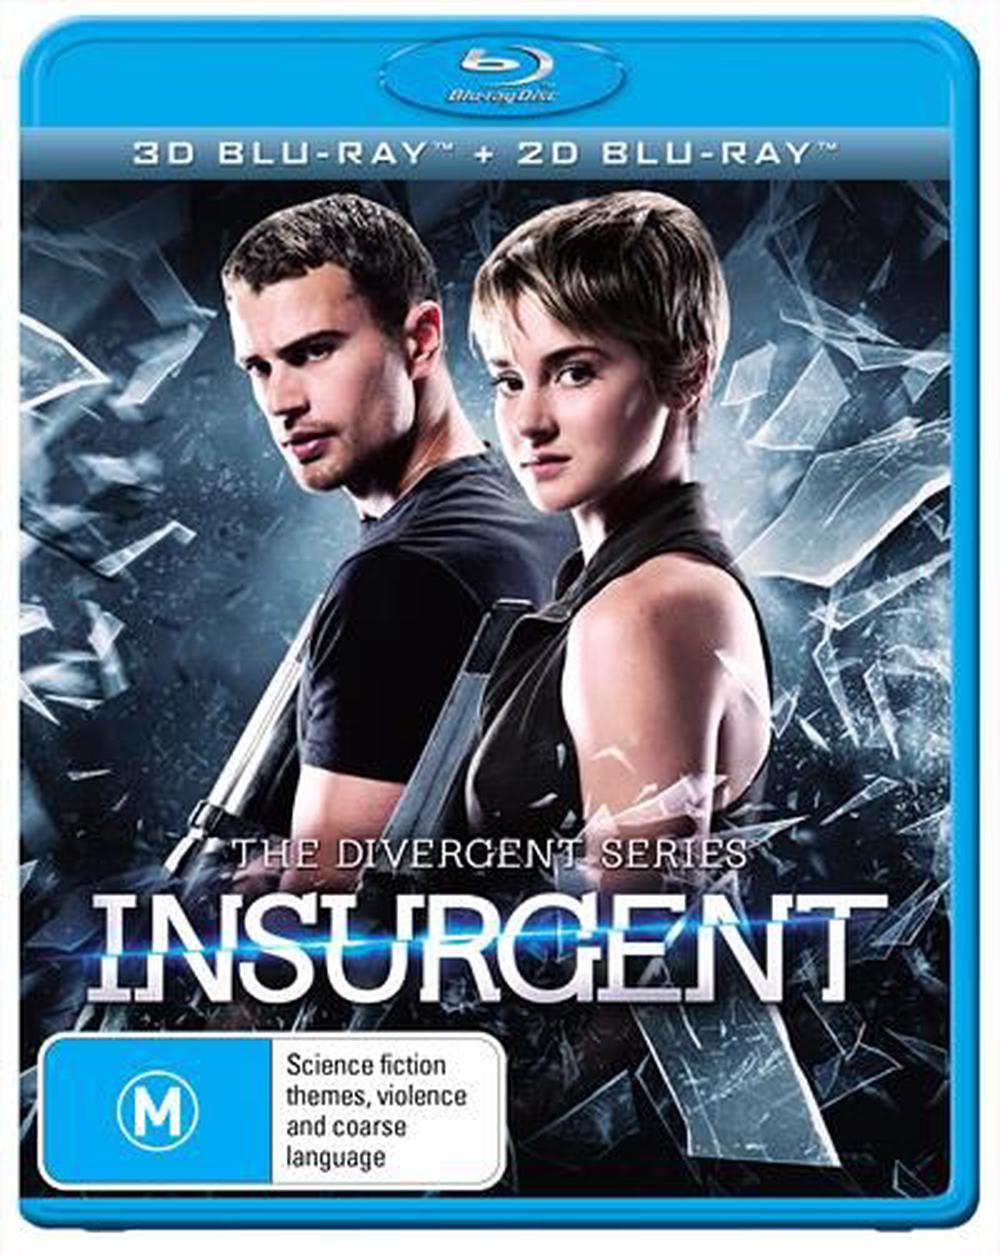 The Divergent Series - Insurgent | 3D + 2D Blu-ray